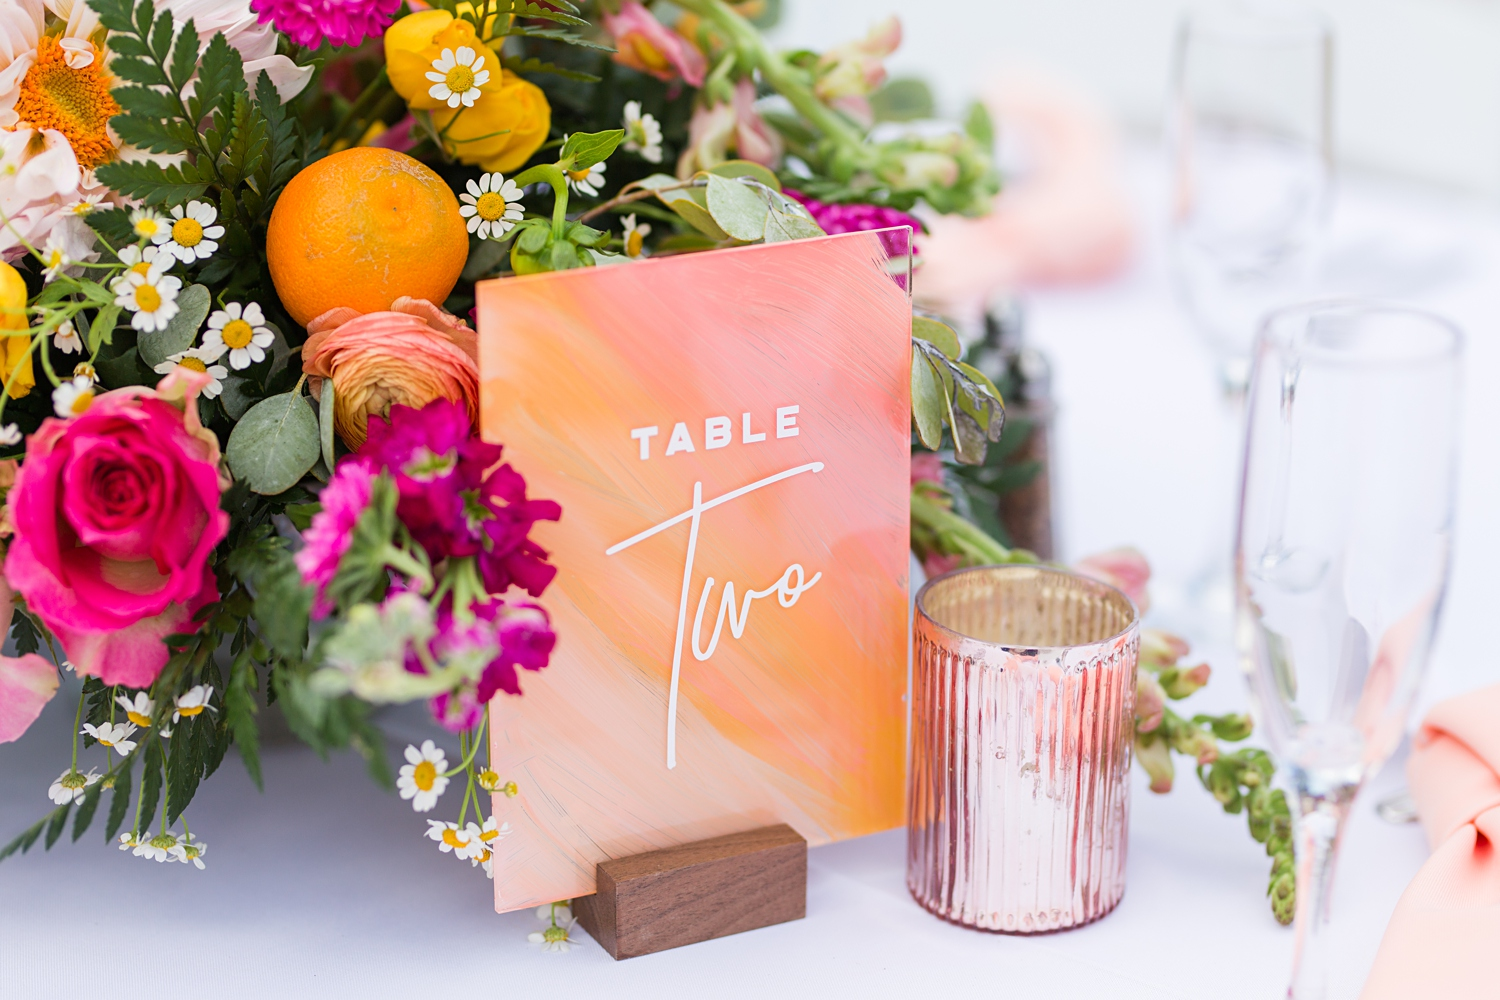 hand painted table number with reds and pinks and oranges